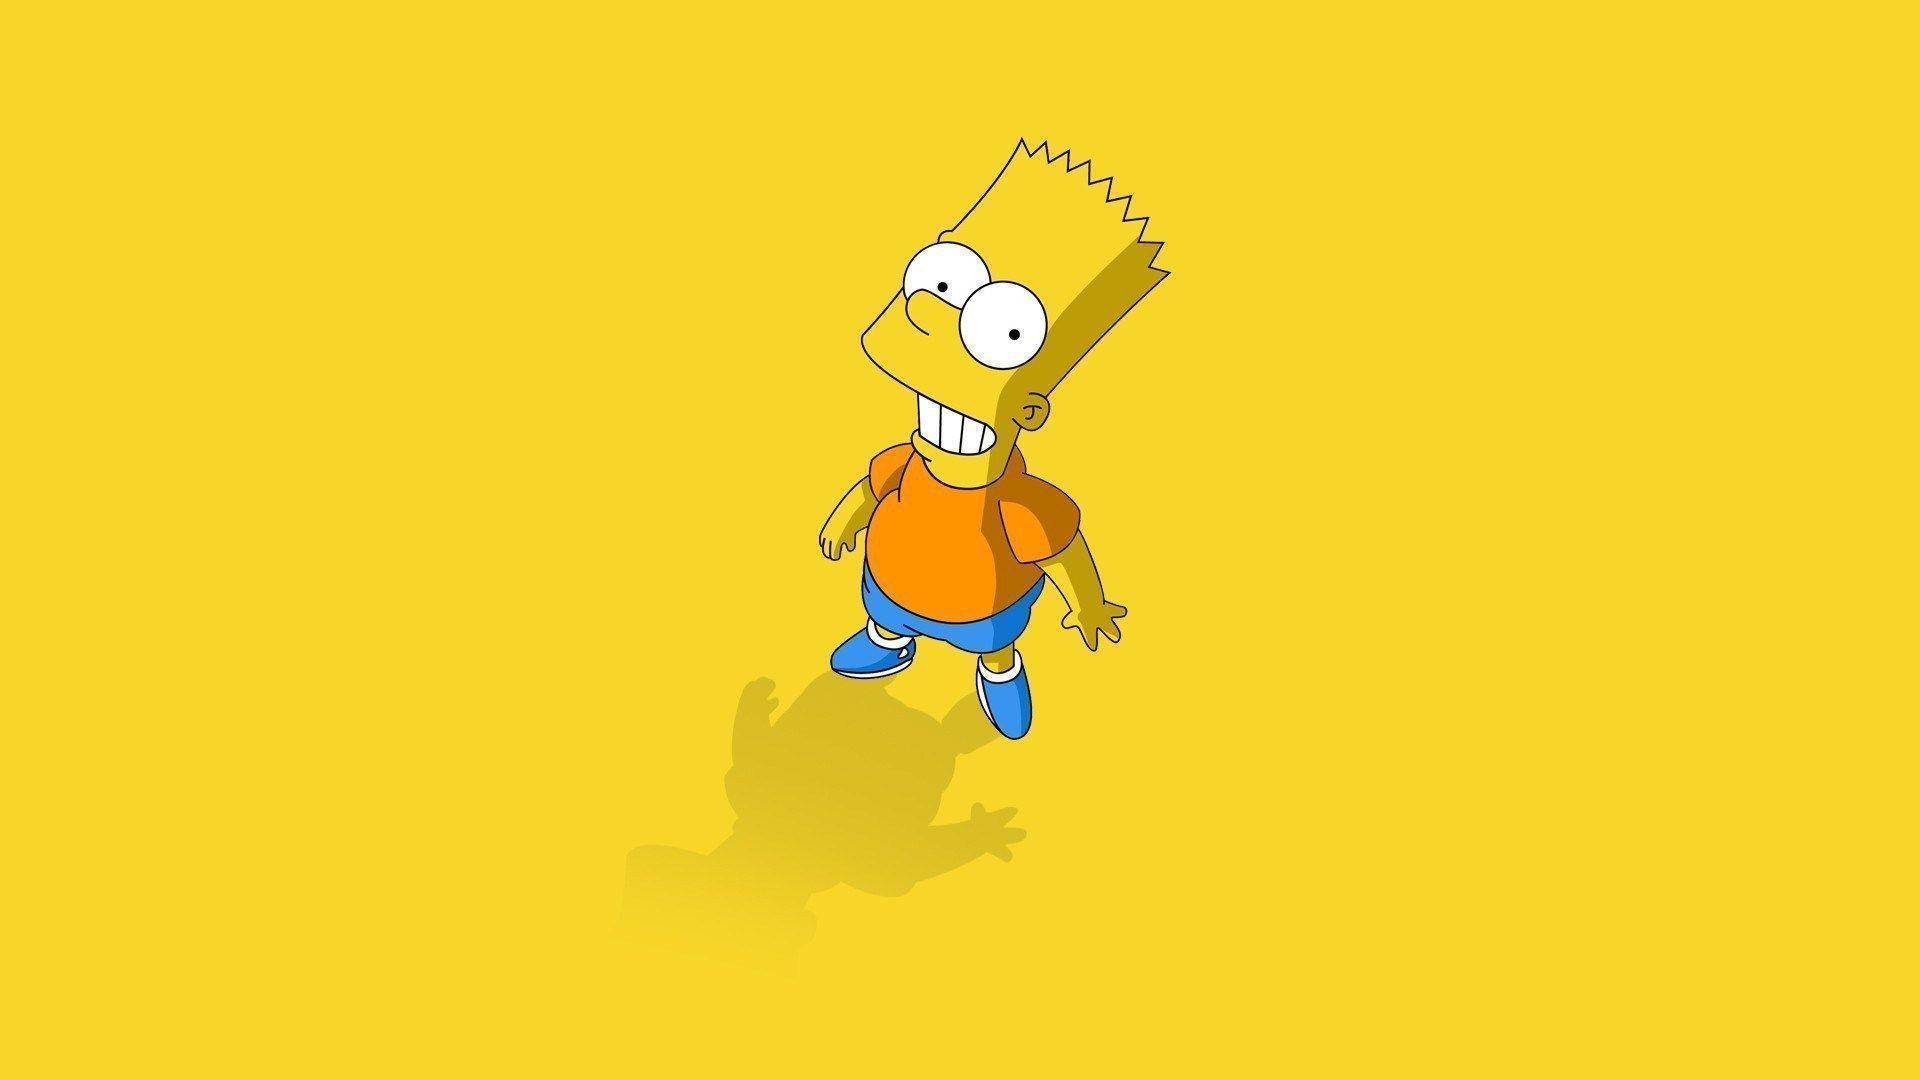 The Simpsons Wallpaper Bart - wallpaper.